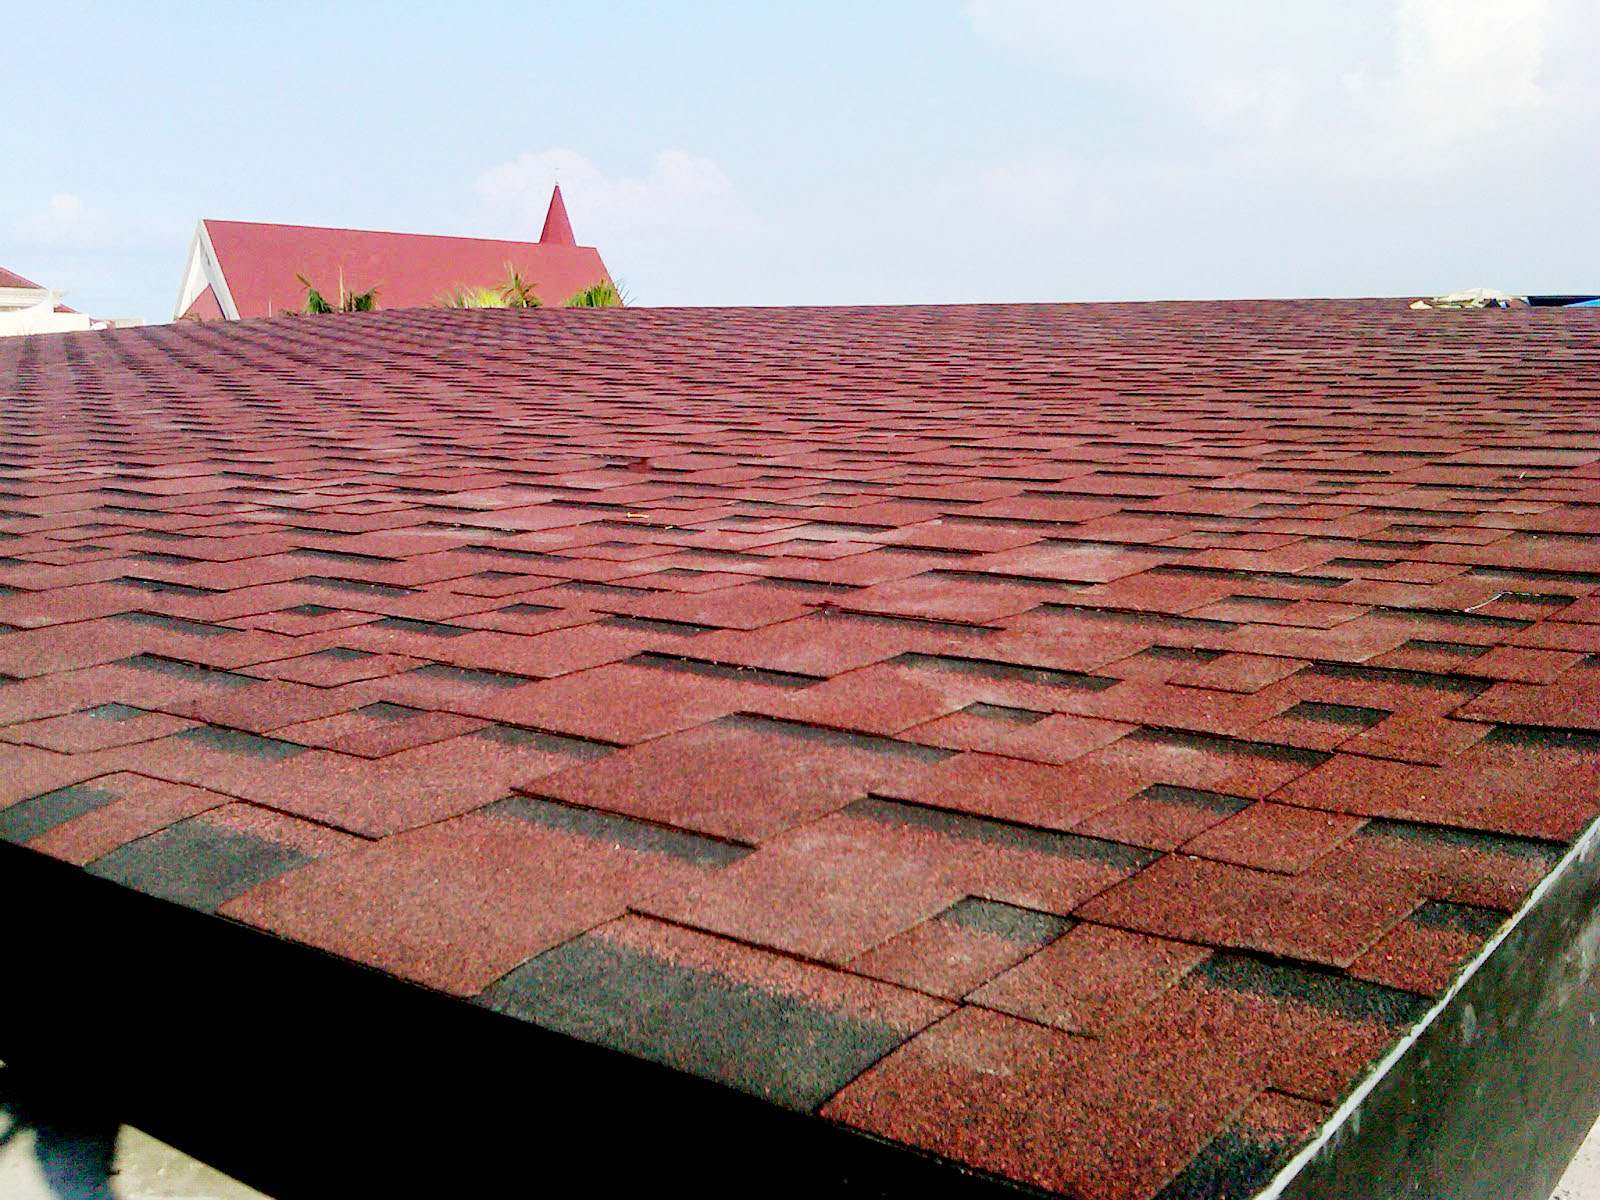 genteng asphalt shingle roof jual surabaya ud sahabat